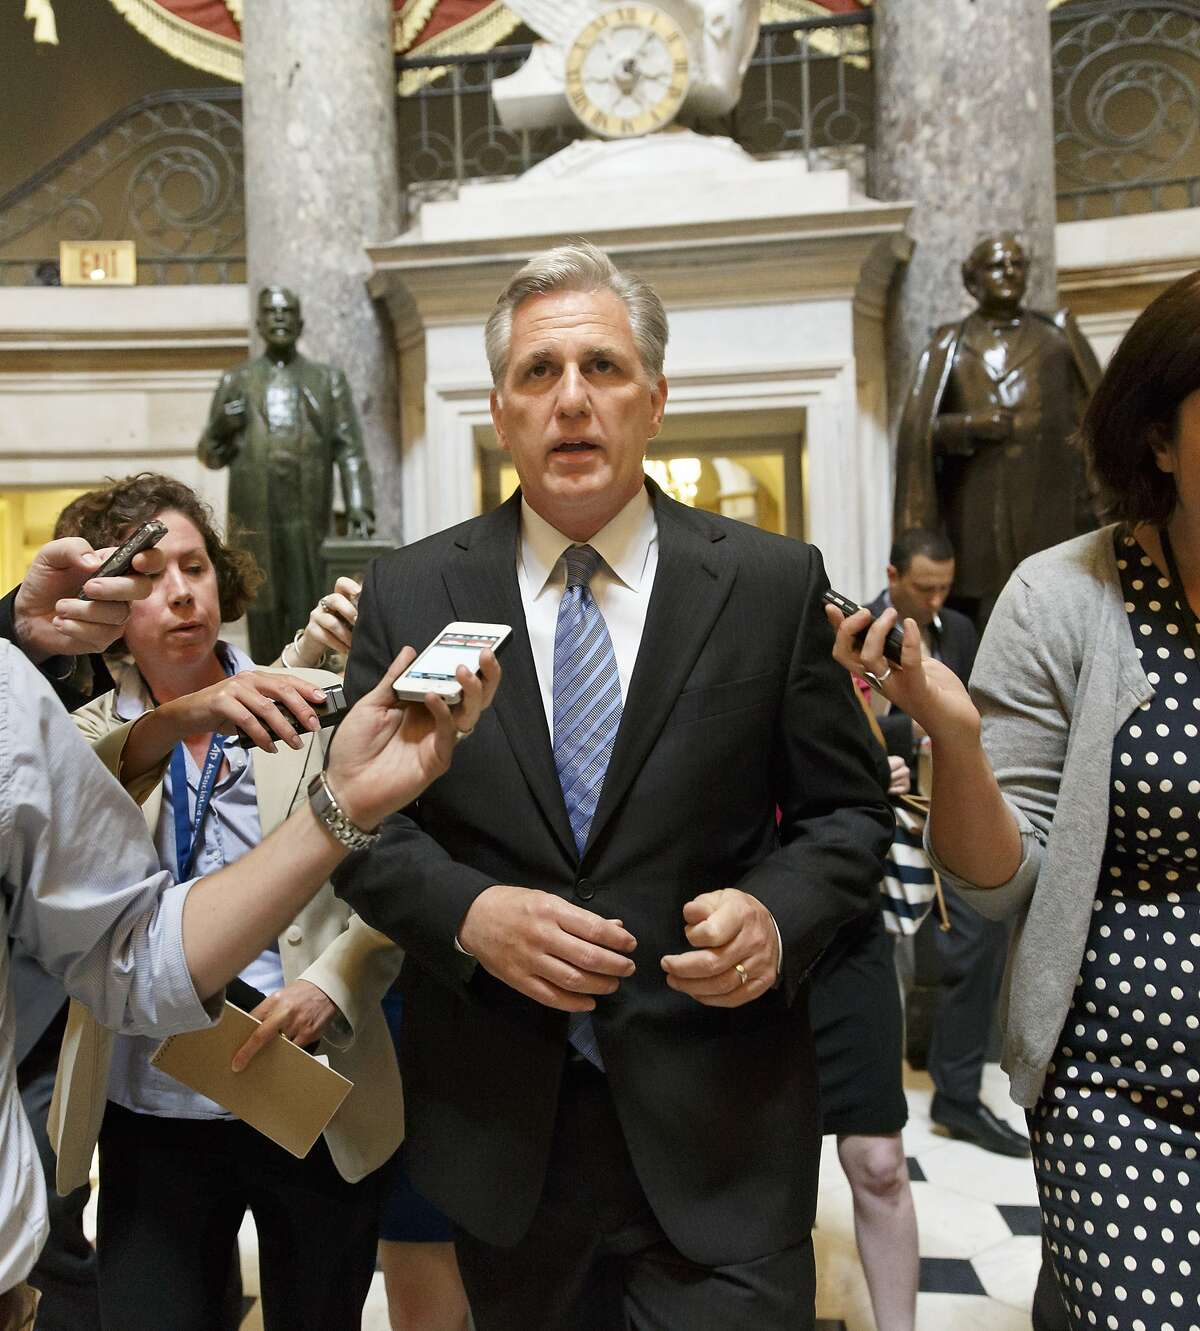 House Majority Whip Kevin McCarthy, R-Calif., leaves House Speaker John Boehner's office on the day after House Majority Leader Eric Cantor, R-Va., was defeated in the Virginia primary at the hands of a tea party challenger, at the Capitol in Washington, Wednesday, June 11, 2014. McCarthy, the third-ranking GOP leader, informed fellow Republicans he intended to run to succeed Cantor, officials said.